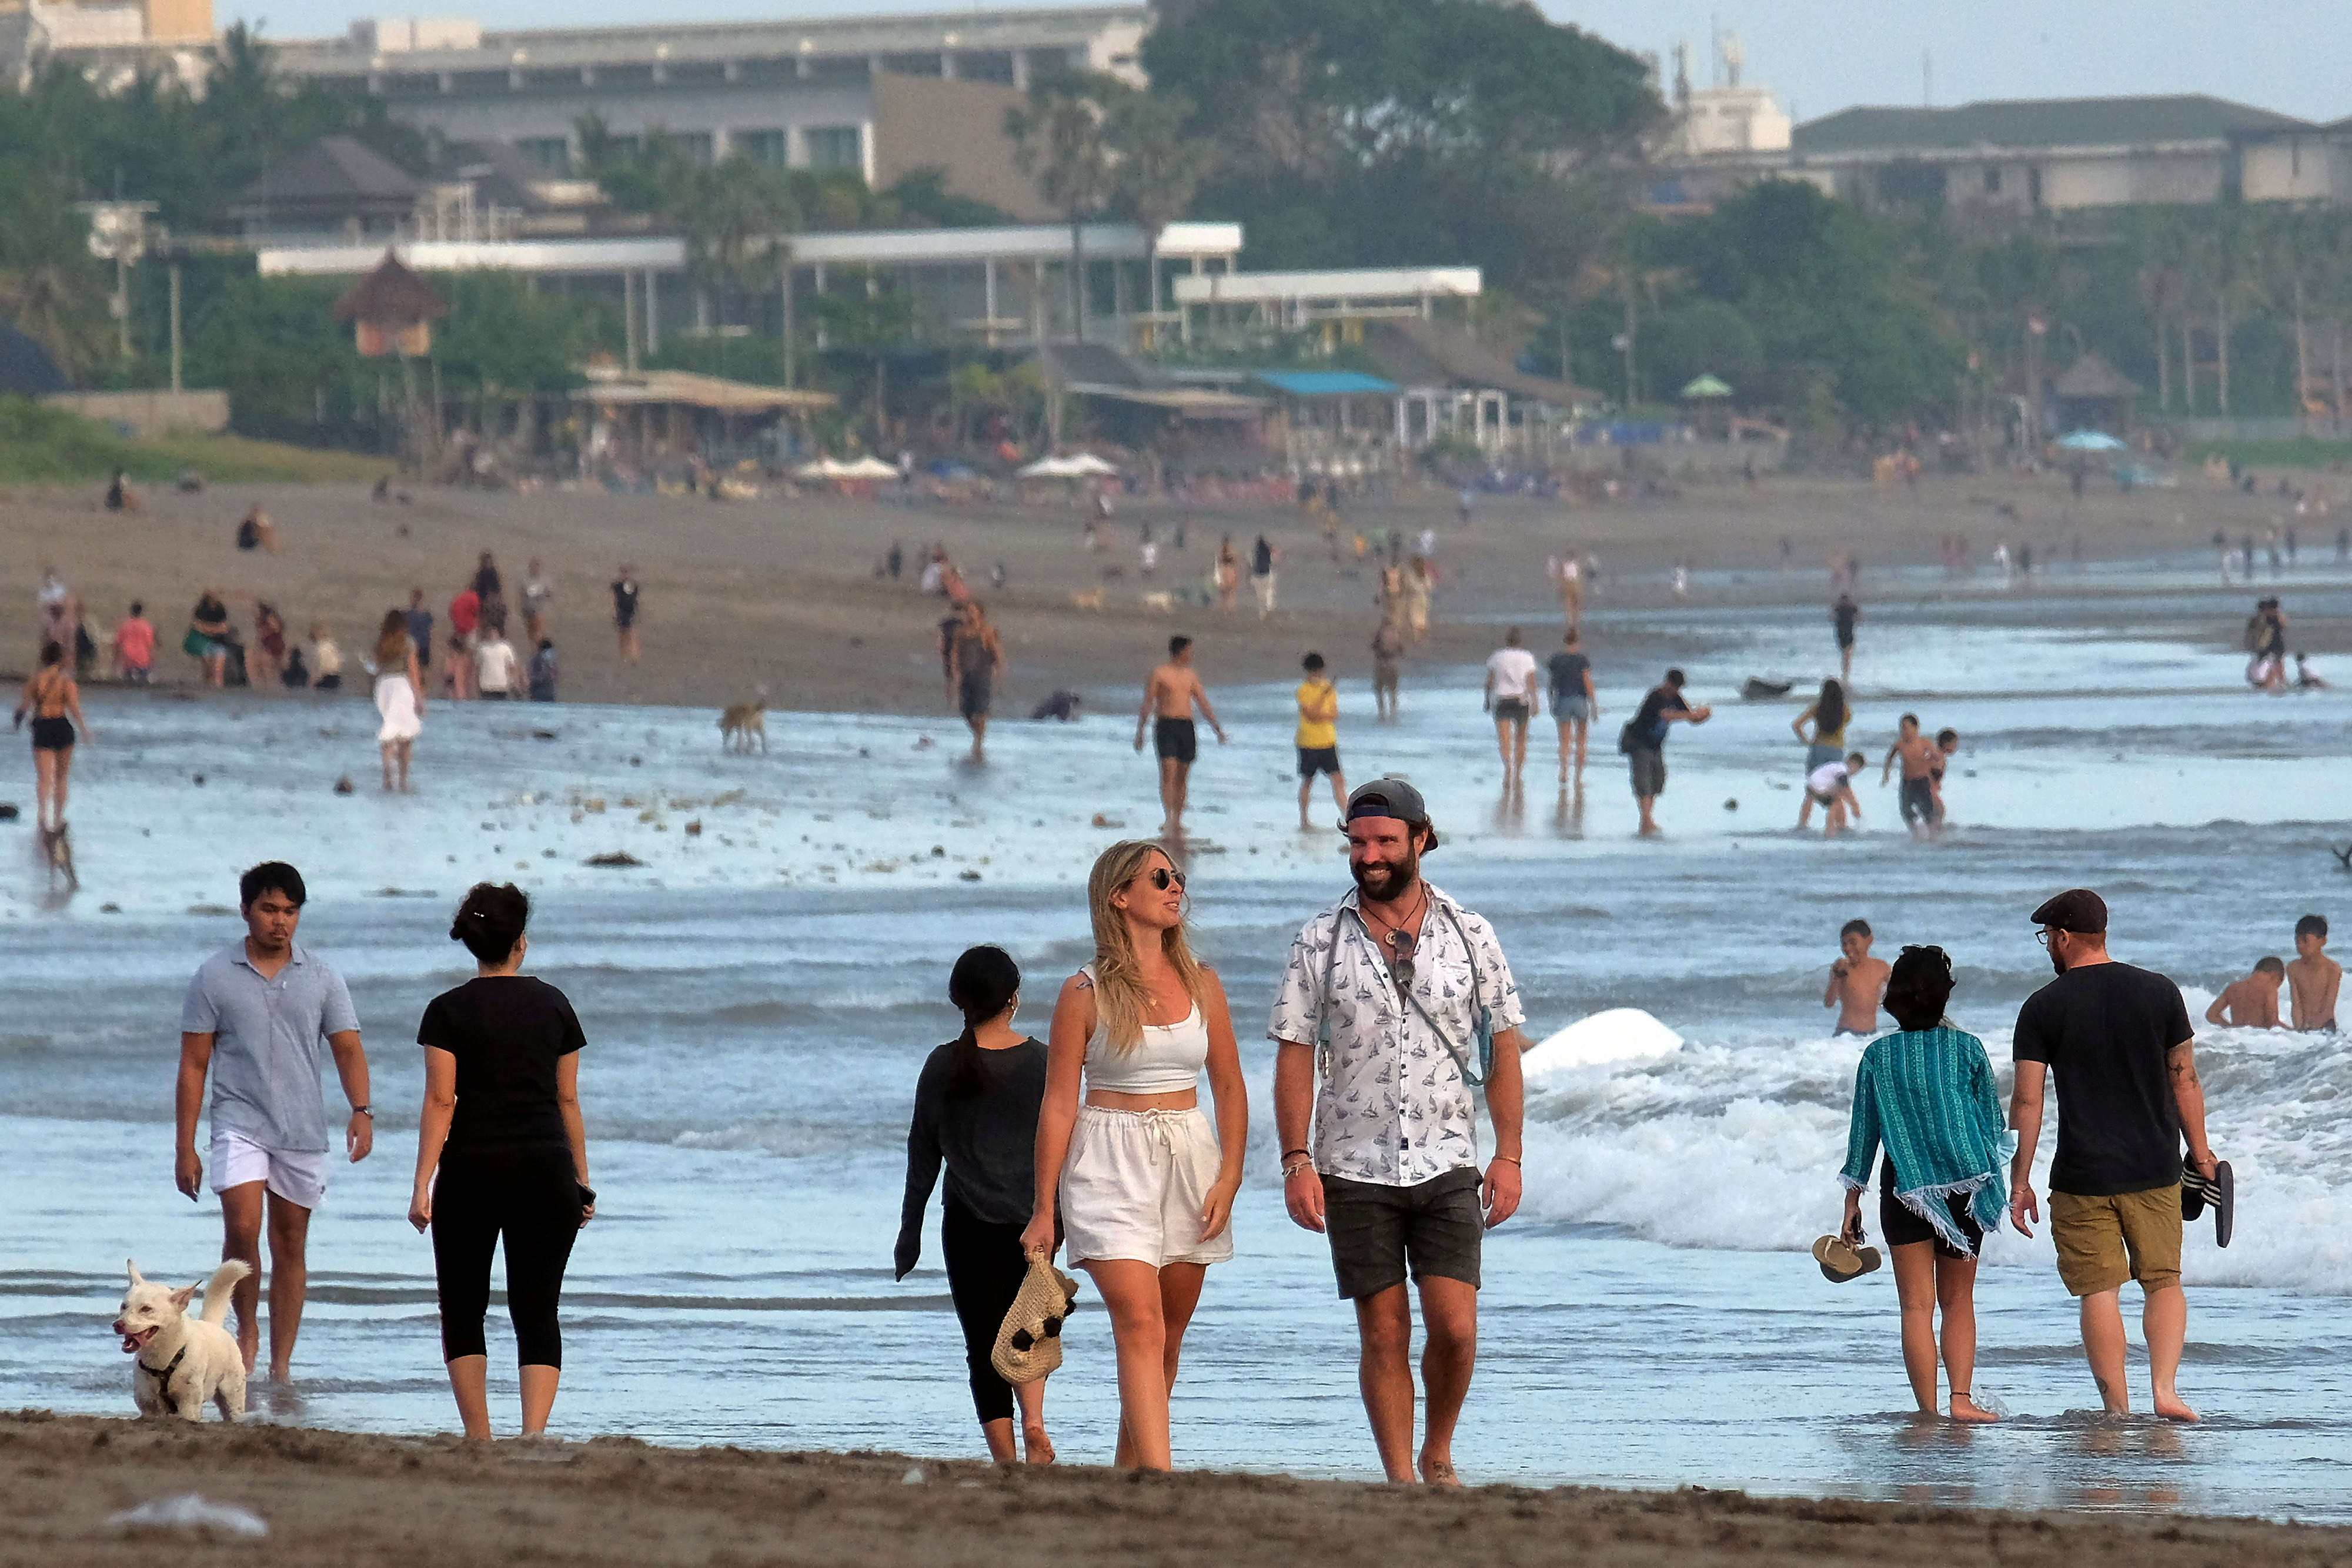 Tourists walk on a beach as the government extends restrictions to curb the spread of coronavirus disease (COVID-19) in Badung, Bali, Indonesia September 9, 2021. Antara Foto/Nyoman Hendra Wibowo/via REUTERS